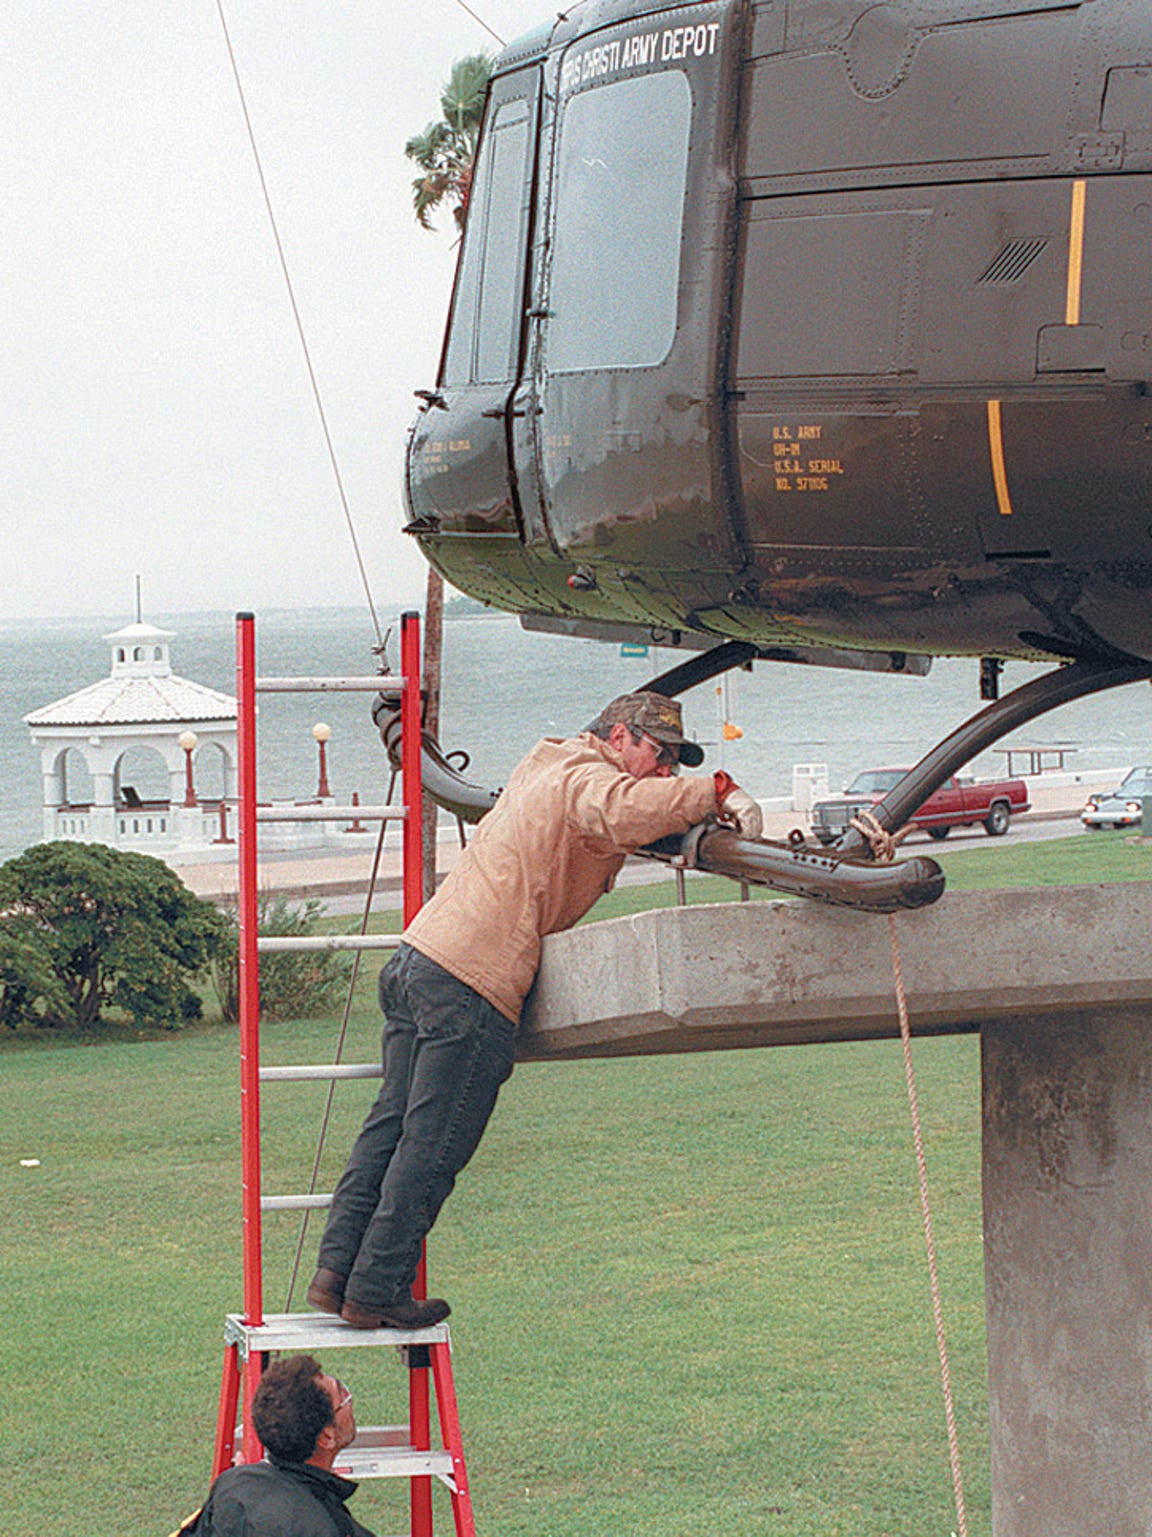 A UH-1H helicopter is installed on the memorial pedestal